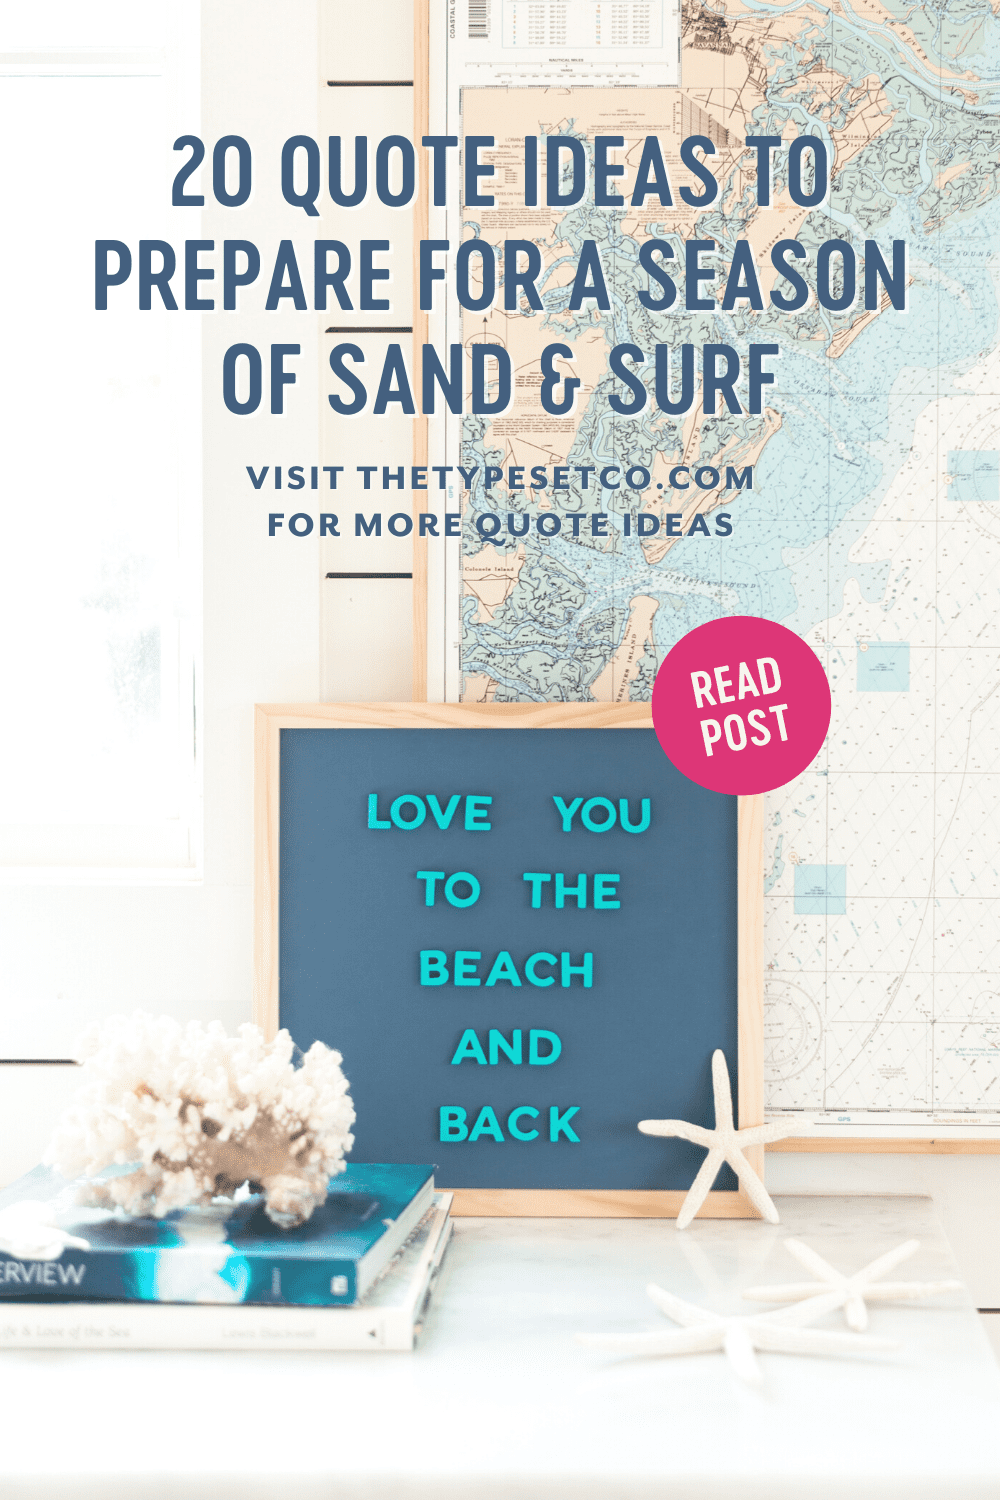 20 Letterboard Quotes to Prepare for a Season of Sand & Surf